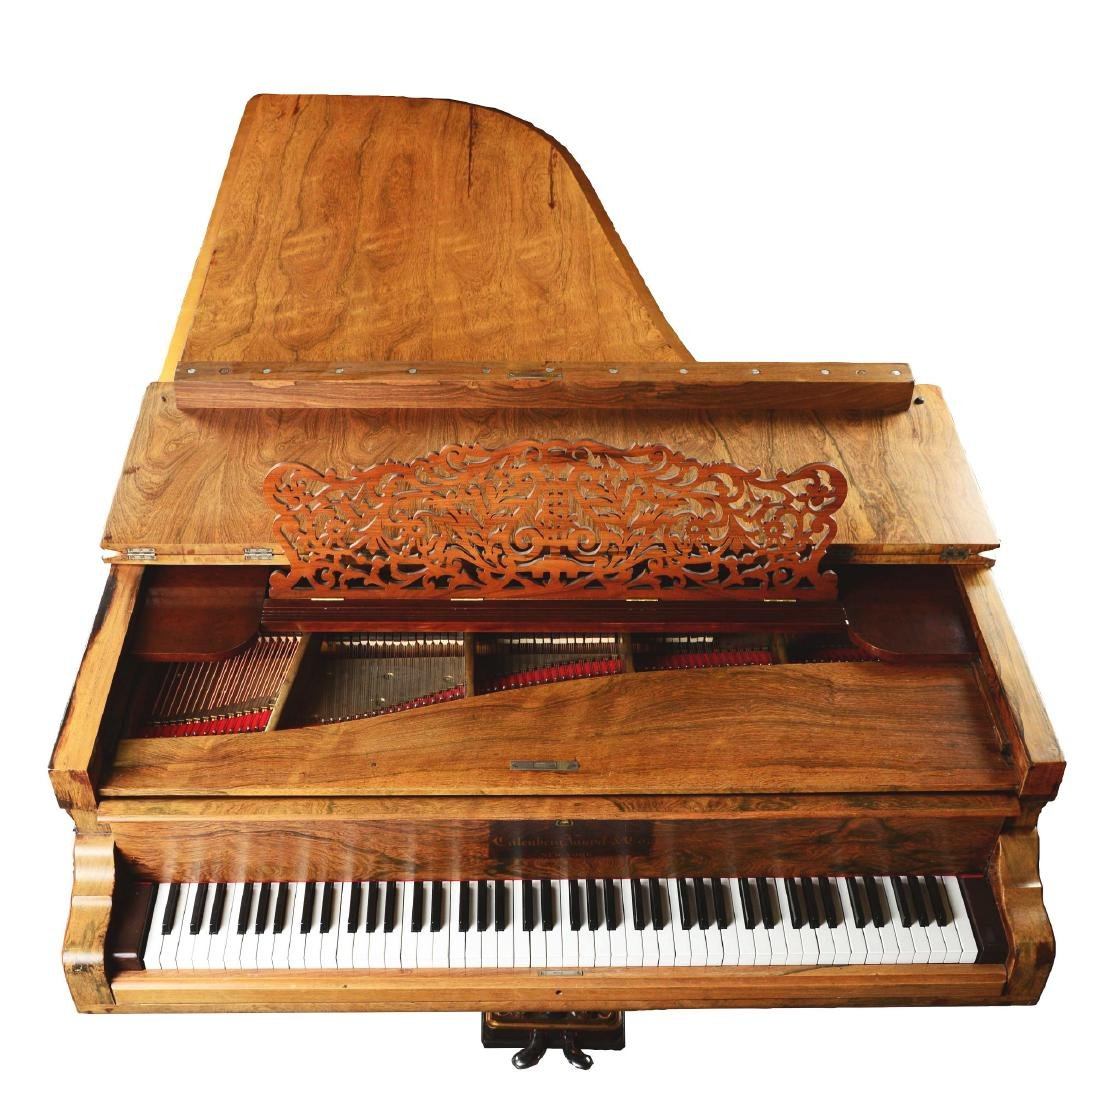 Calenberg & Vaupel Grand Piano